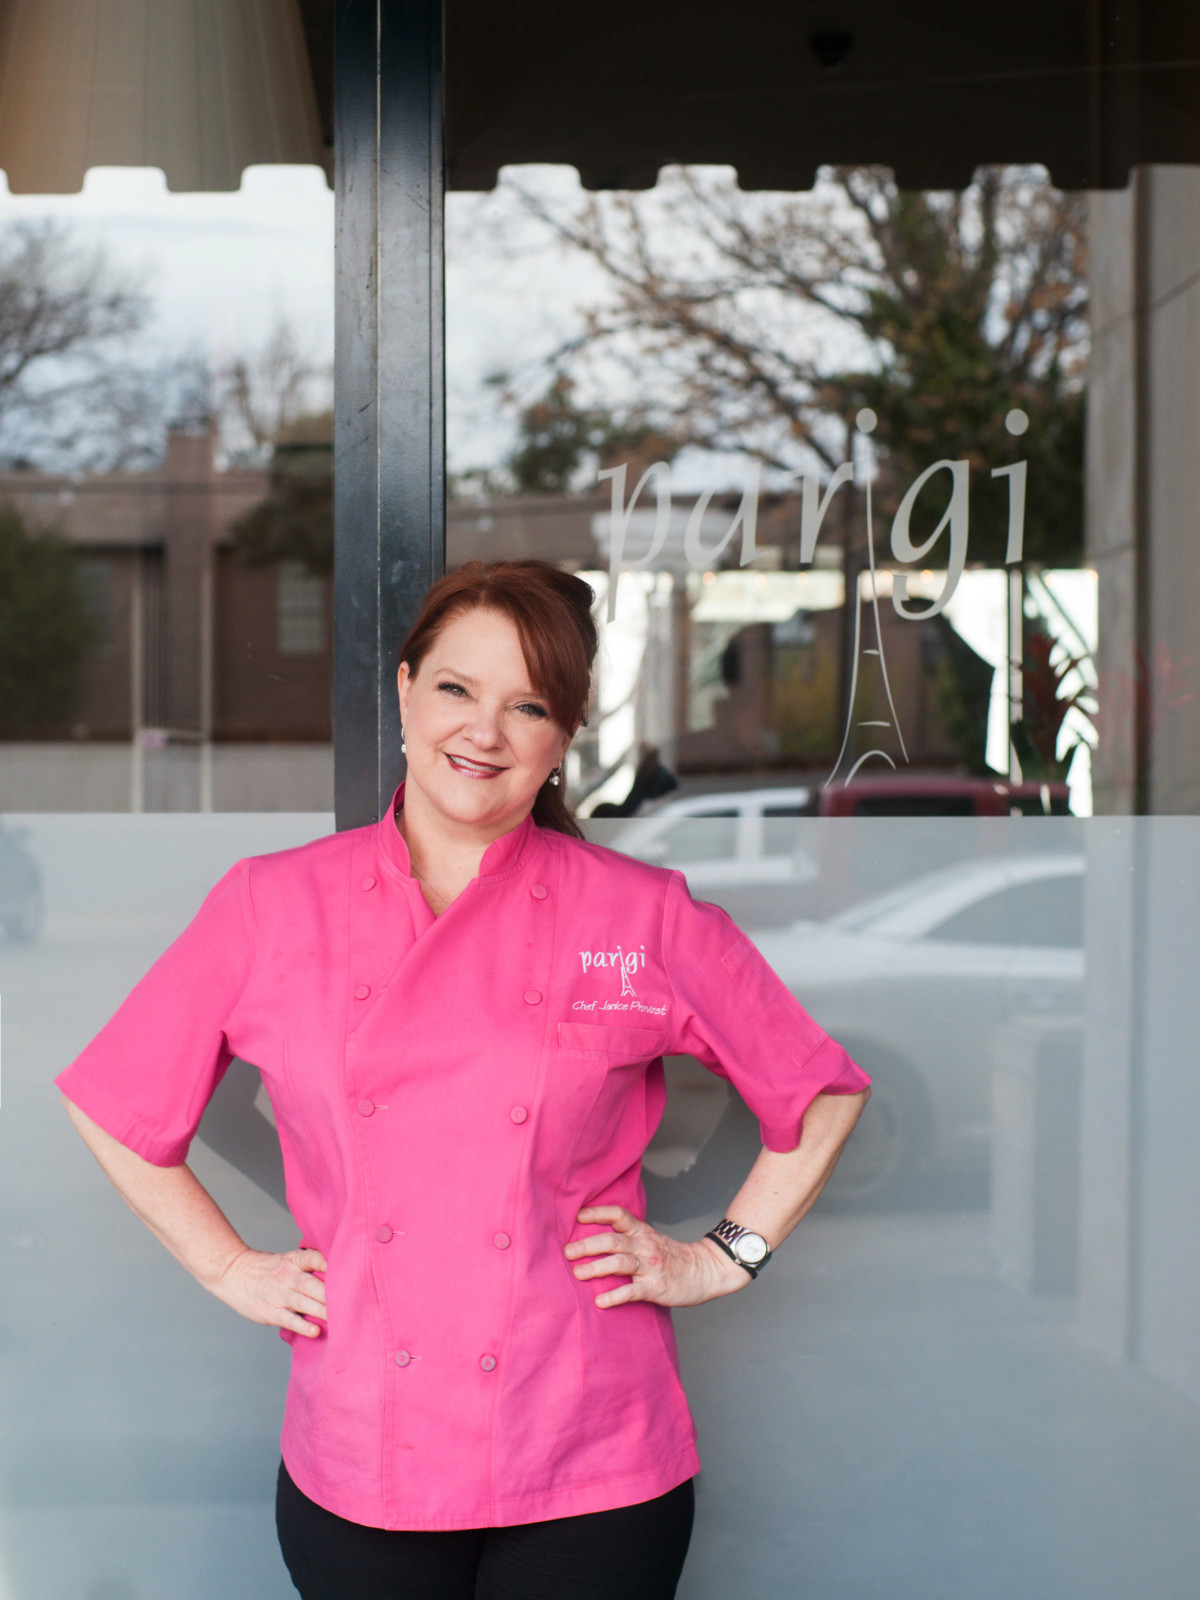 Chef Janice Provost Parigi restaurant in Dallas